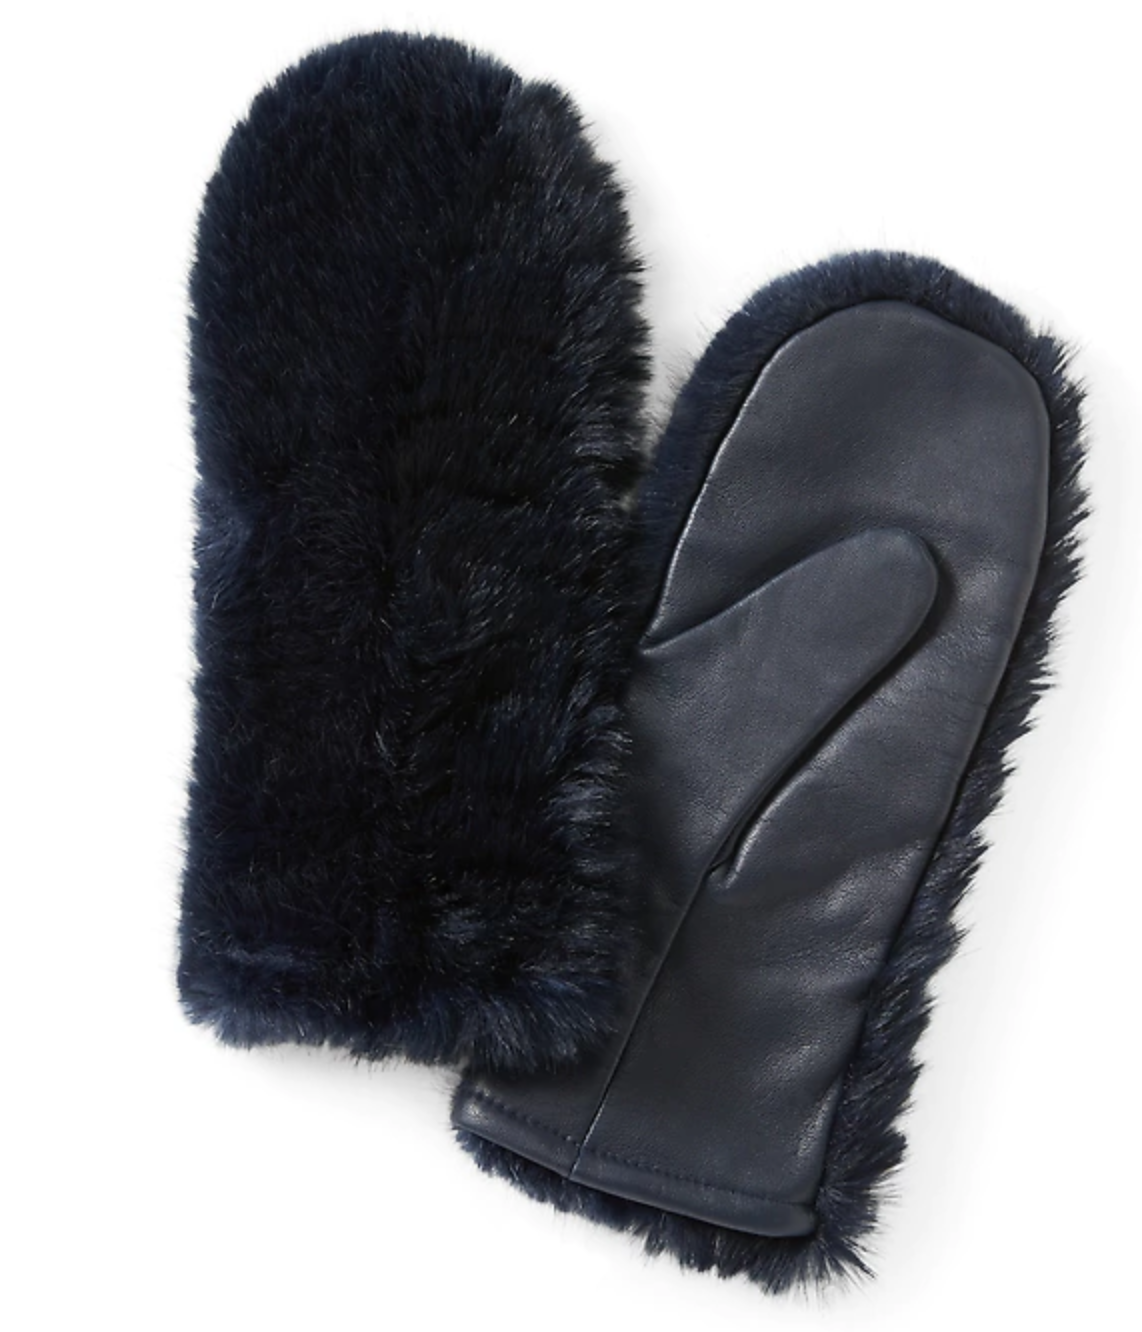 banana republic mittens